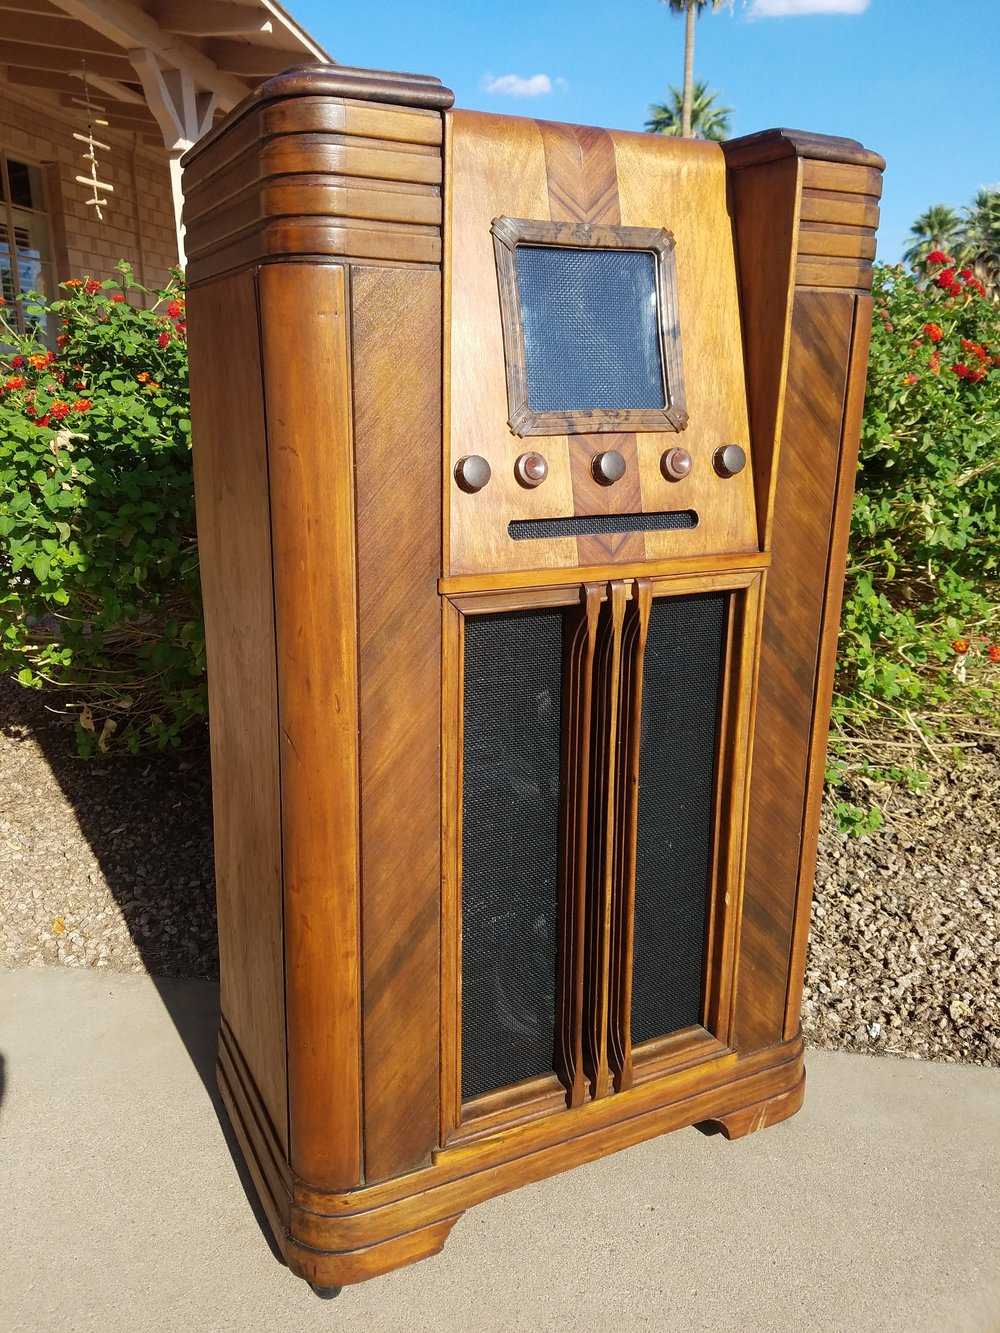 Western Air Patrol Antique Radio Cabinet Now IPod/MP3 Player! Vintage  Original Finish